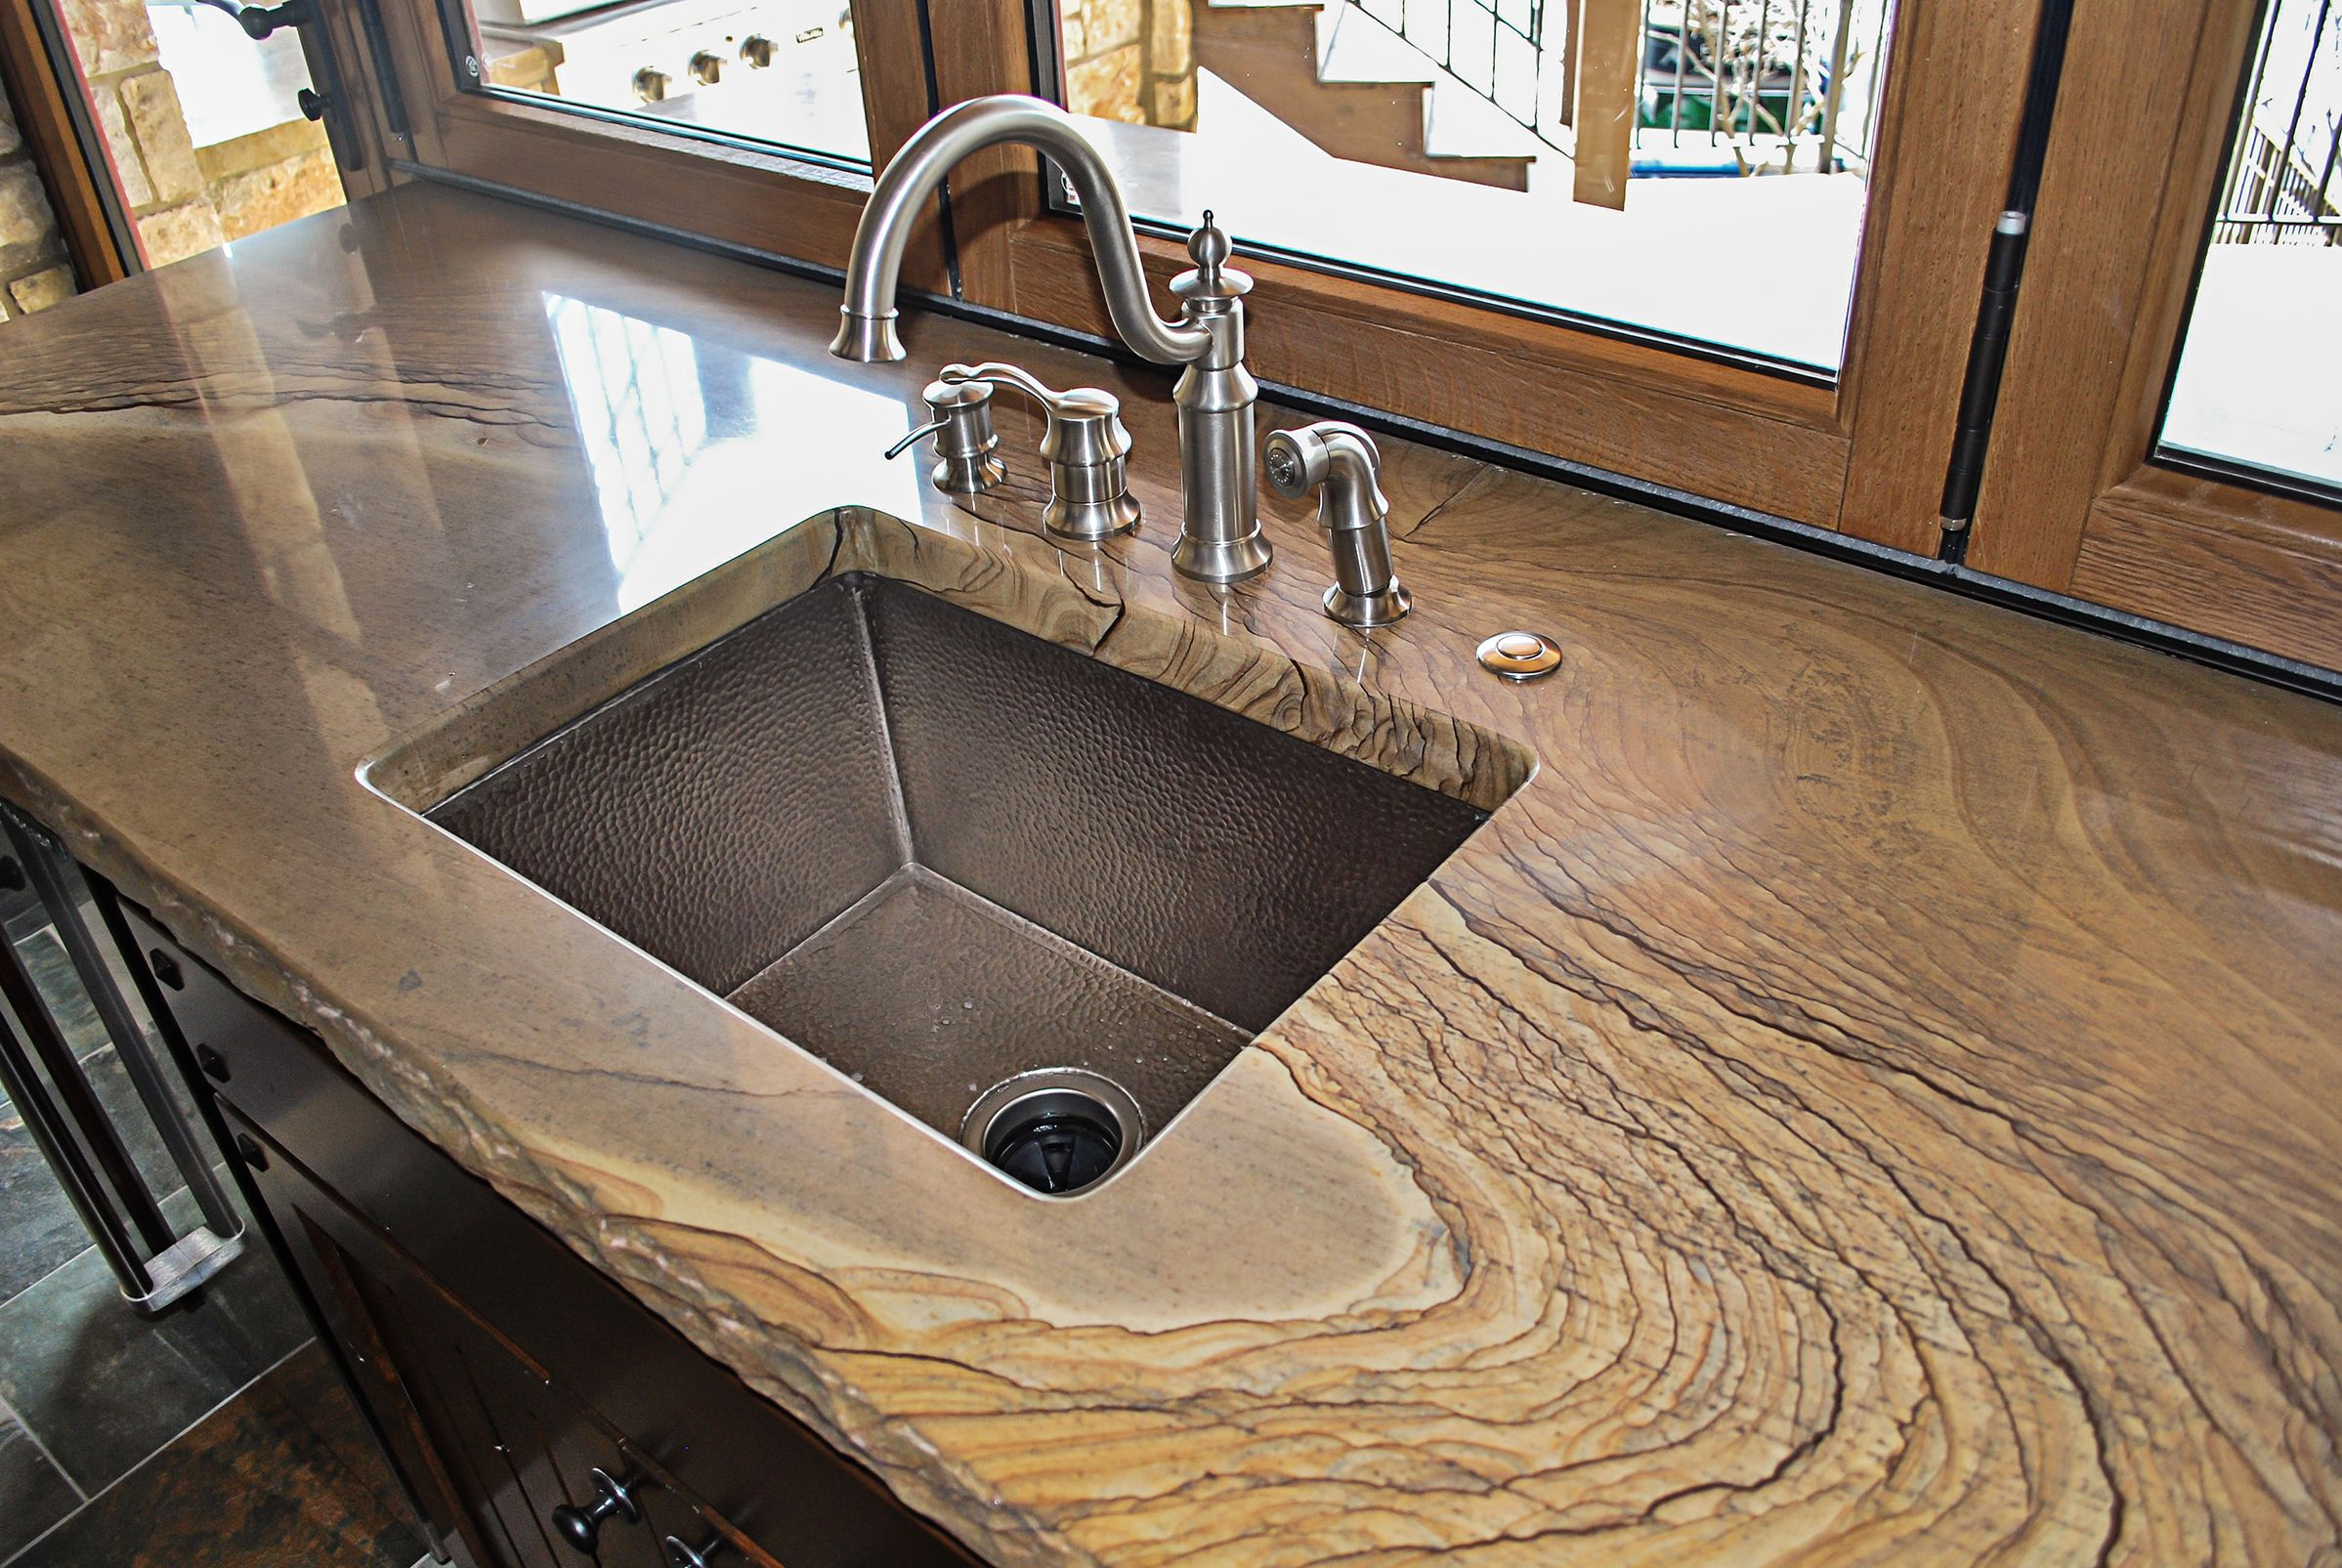 How To Grind Granite Countertops Beautiful Kitchen In This Lake House Featuring Semco Stone